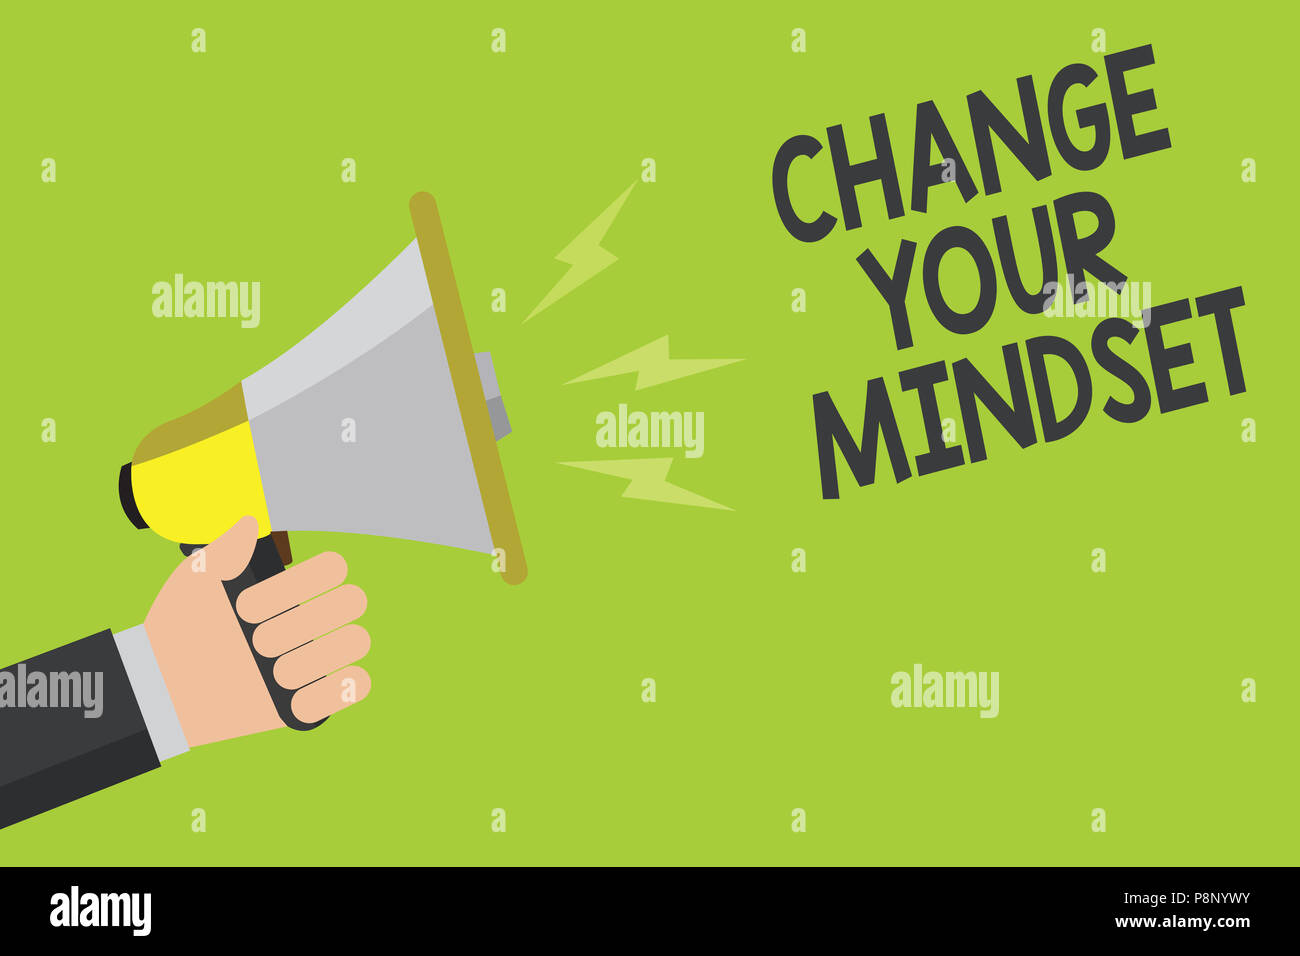 Handwriting Text Change Your Mindset Concept Meaning Replace Your